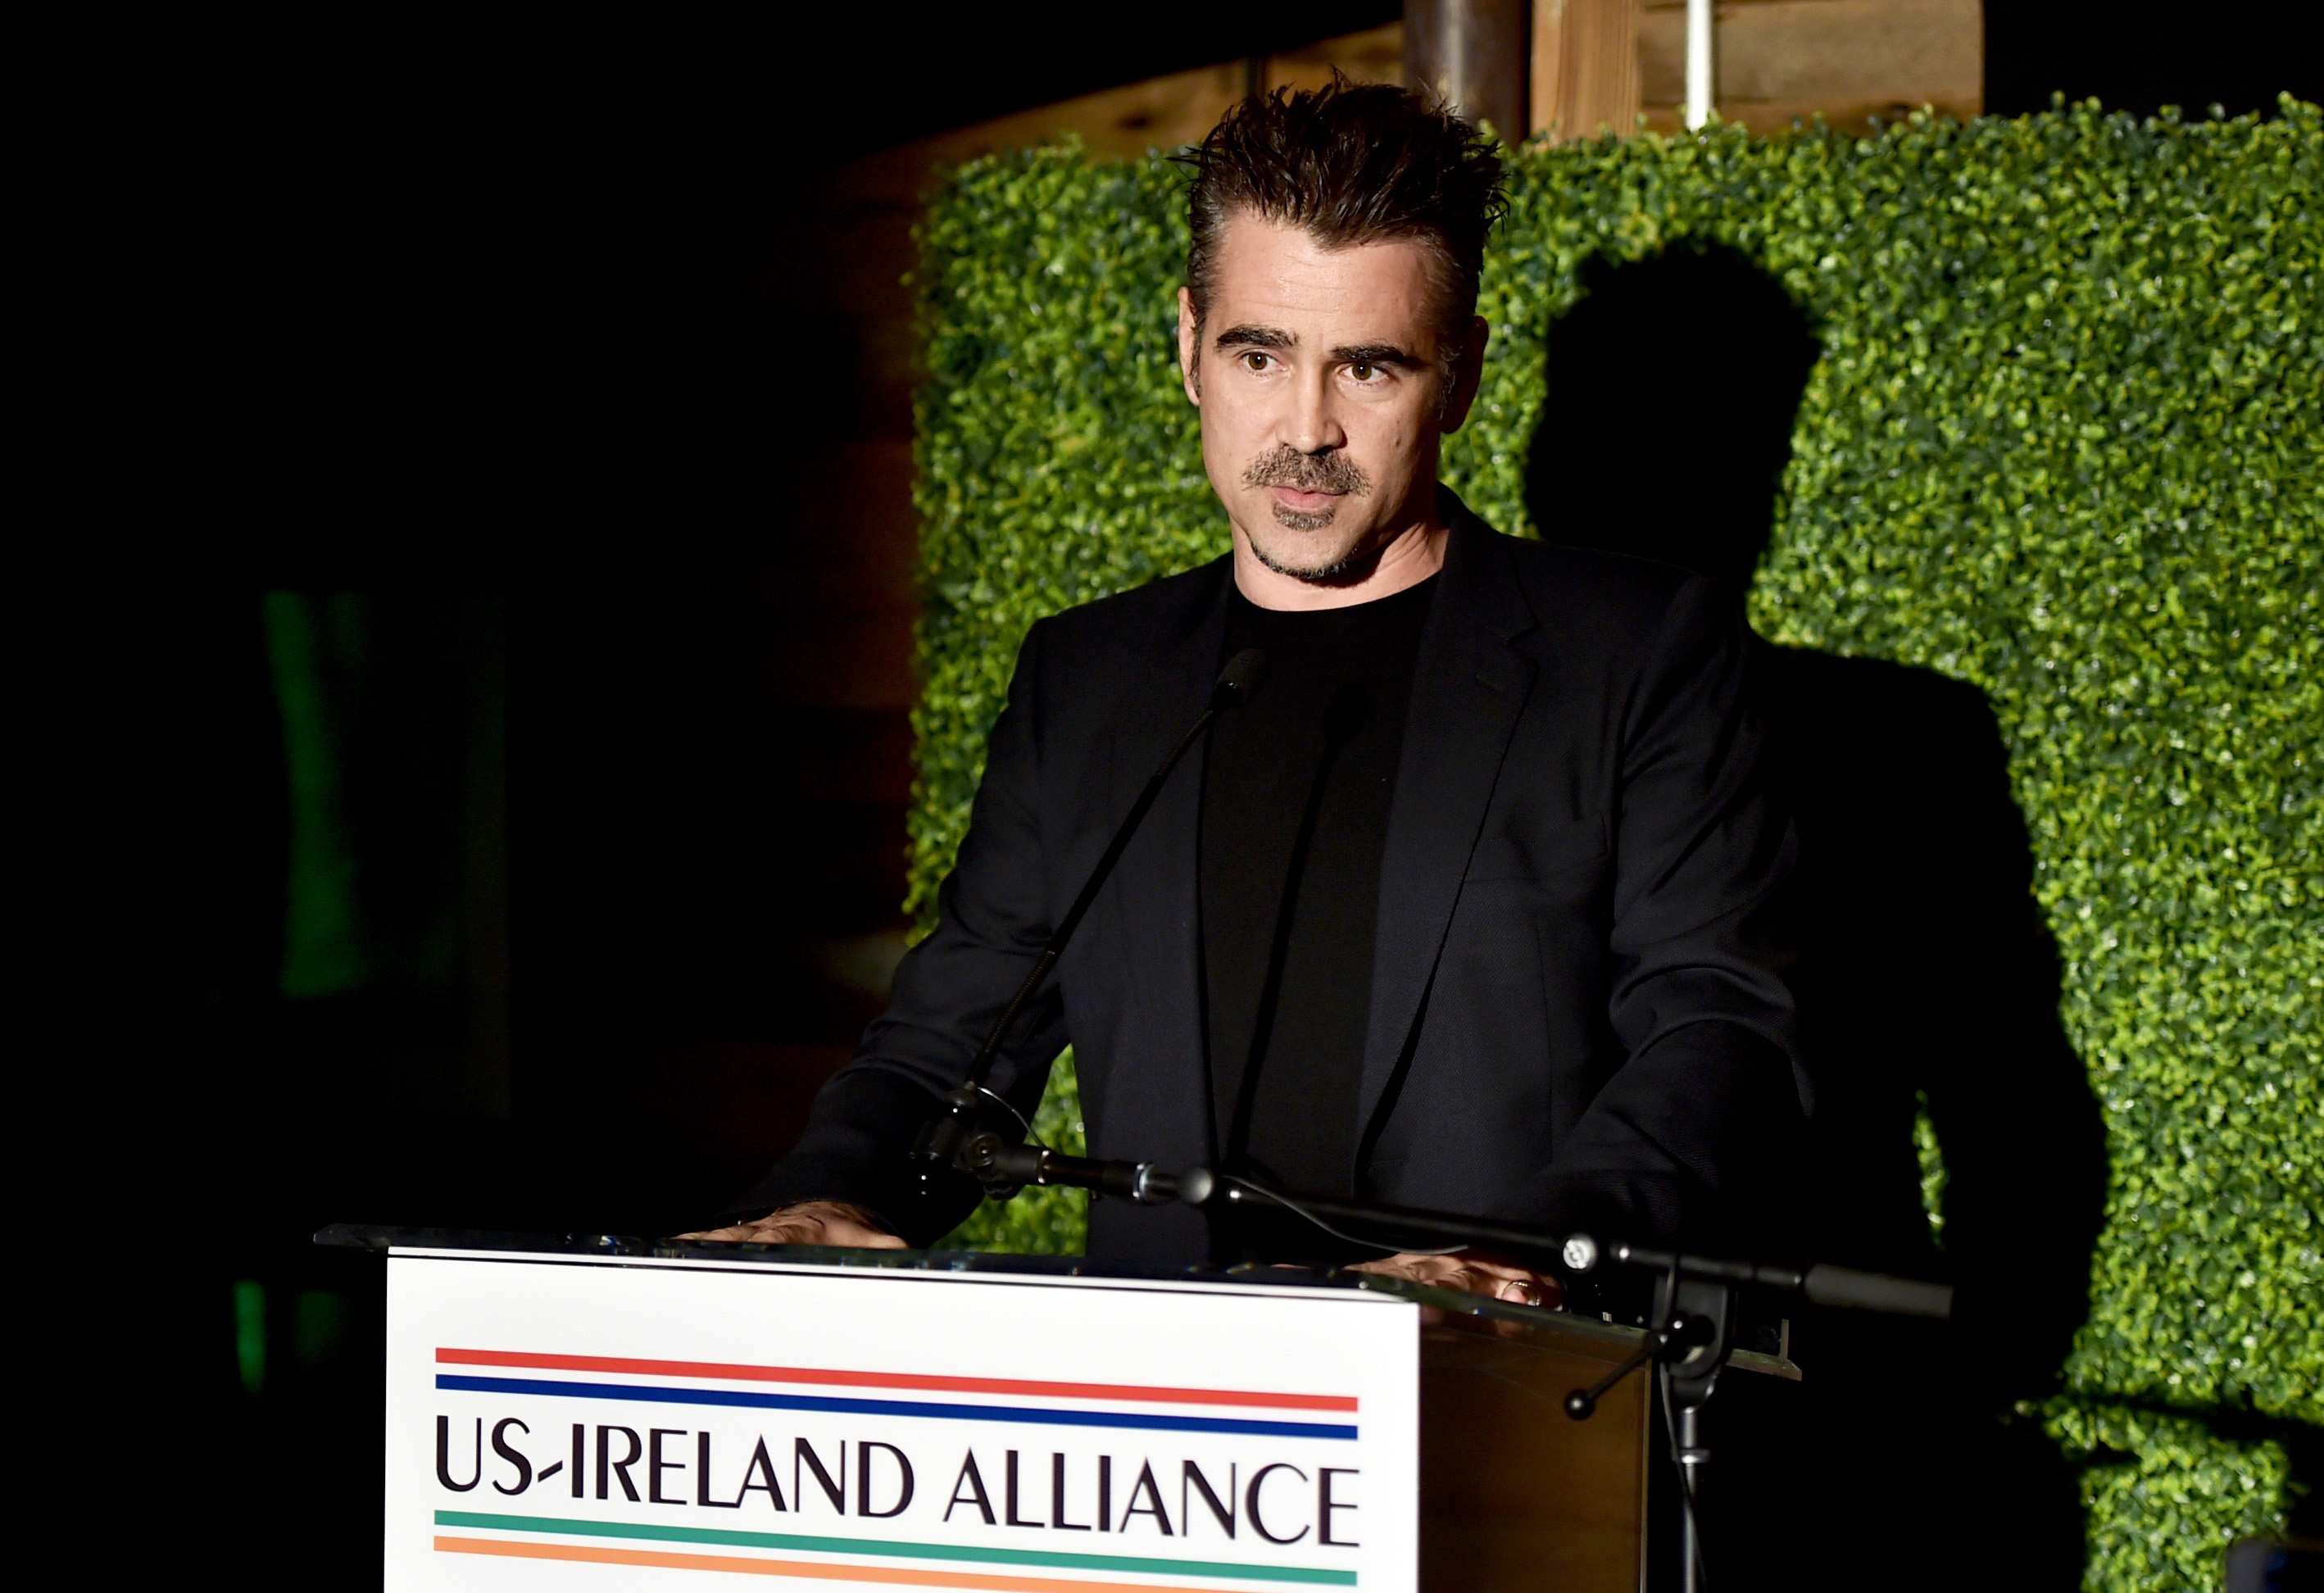 Colin Farrell speaks during the Oscar Wilde Awards at Bad Robot headquarters in Santa Monica on March 1, 2018.